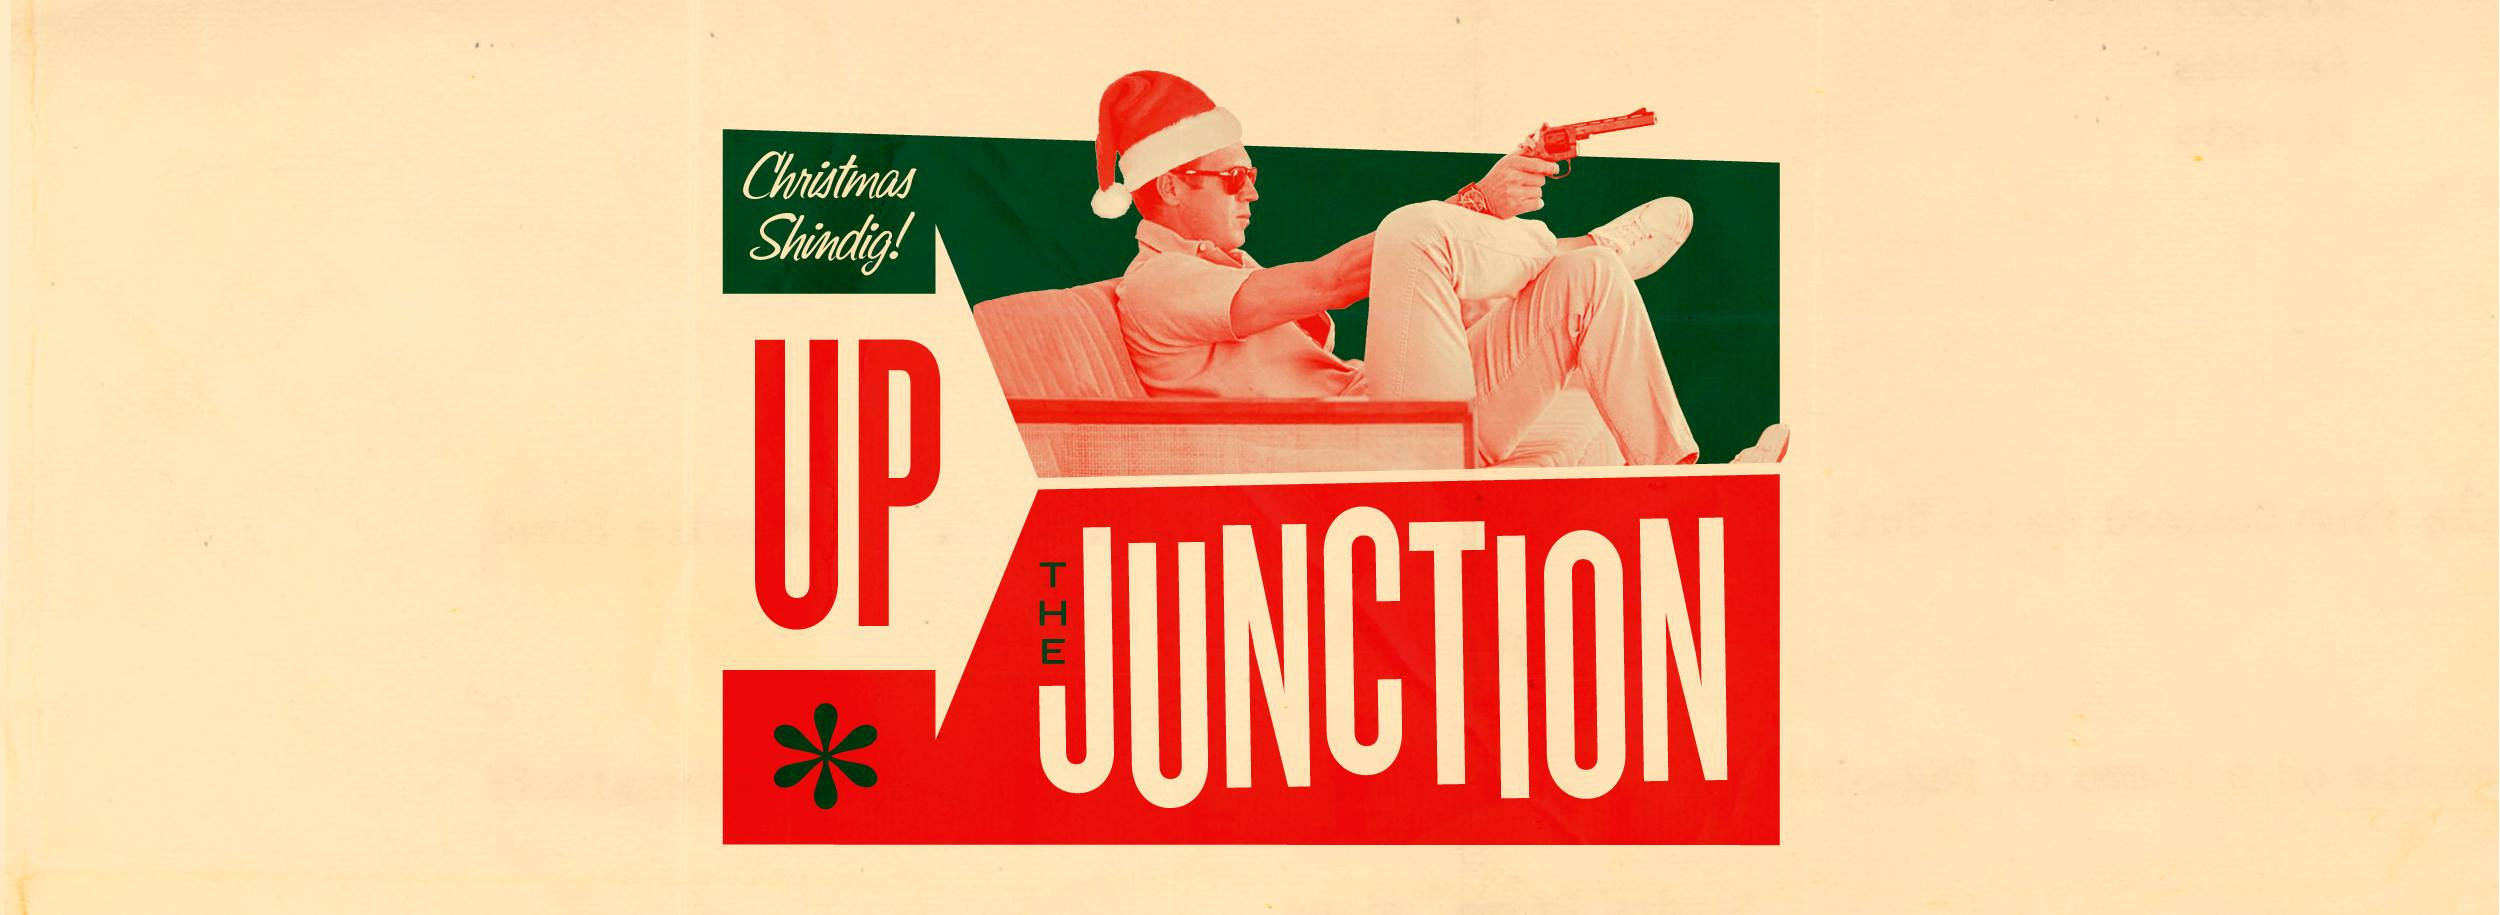 Up The Junction - Christmas Shindig! - 60s Mod RnB Soul Club